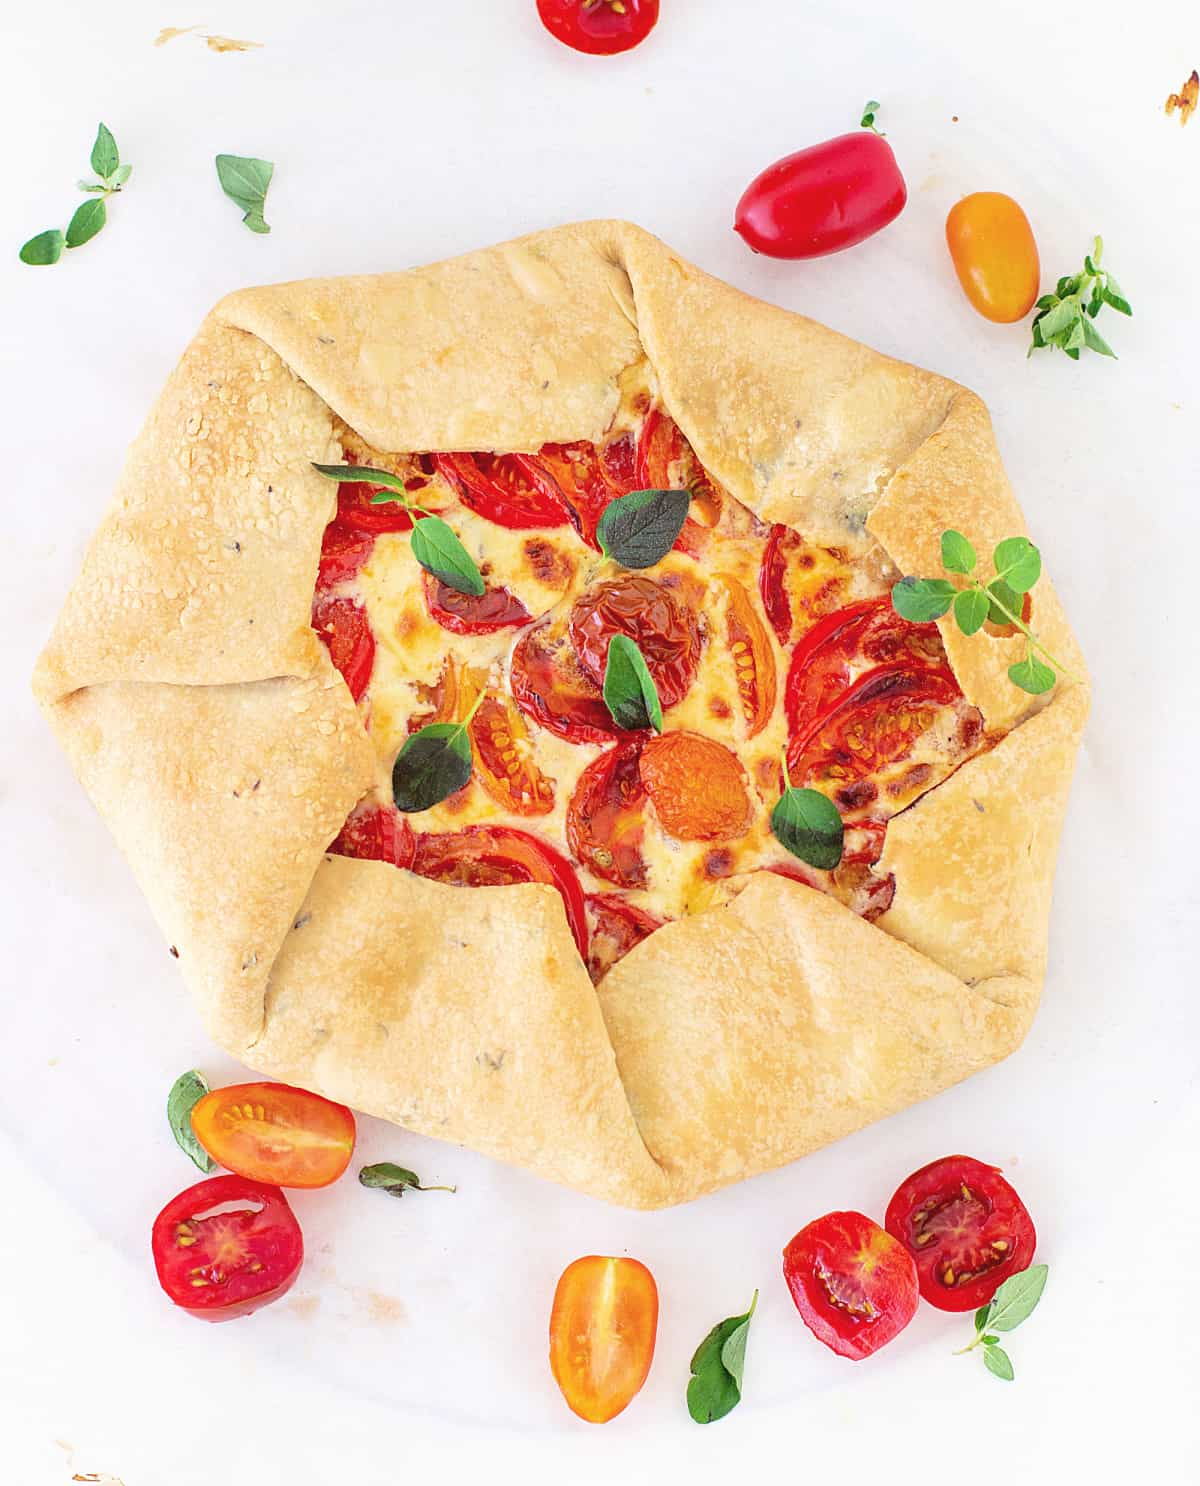 Whole tomato galette on white surface, loose cherry tomatoes and herbs around it